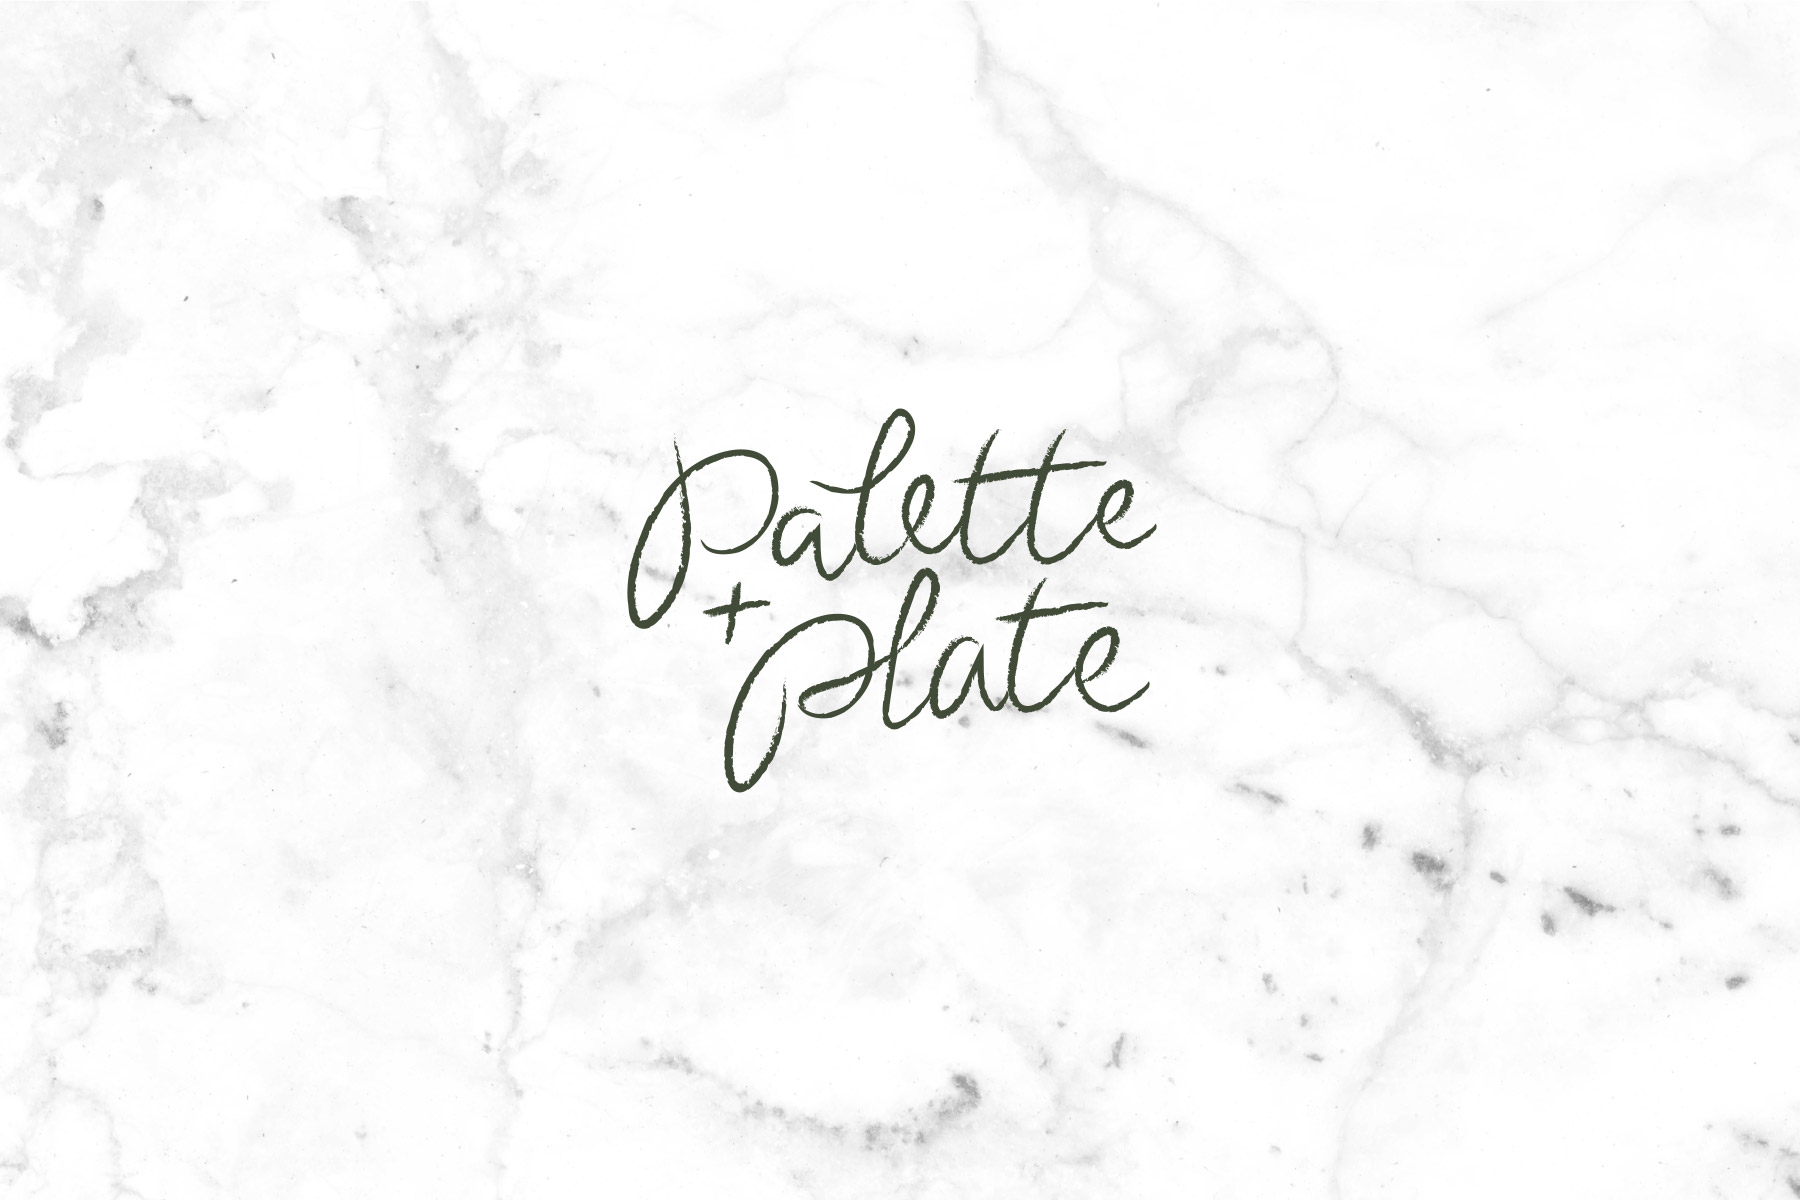 Palette and Plate logo on white marble background